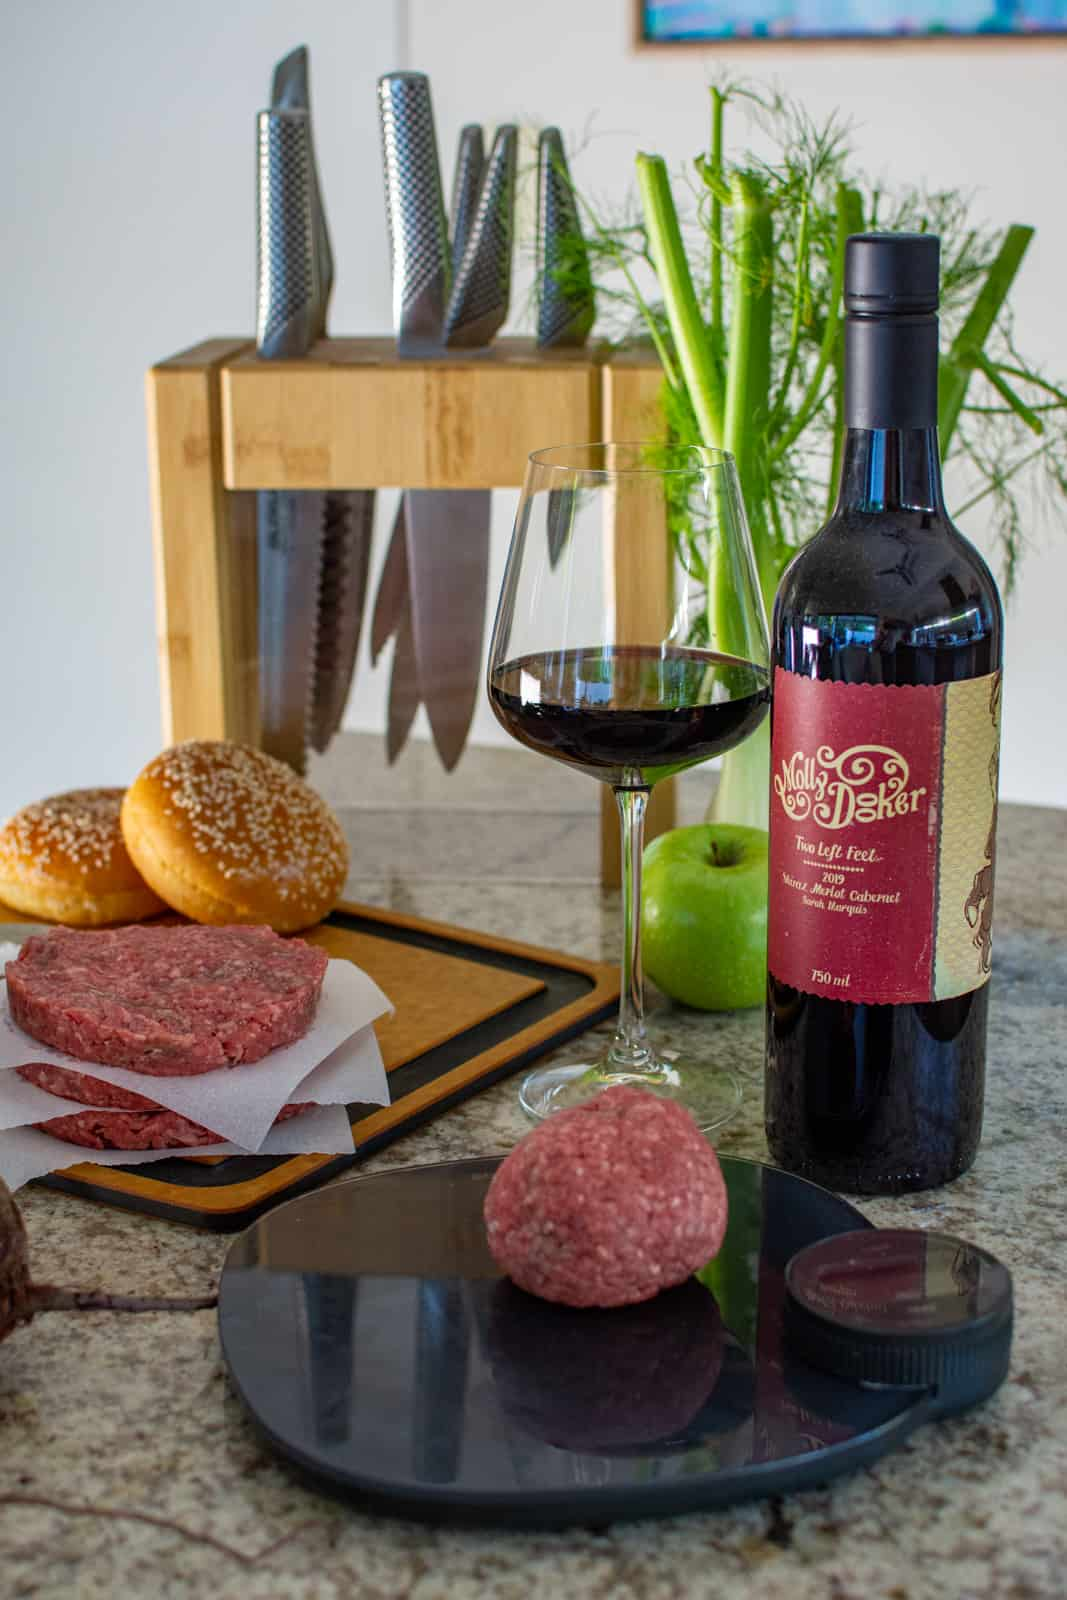 beef mince on a weighing scles with beef burger patties and a bottle of mollydooker wine behind it